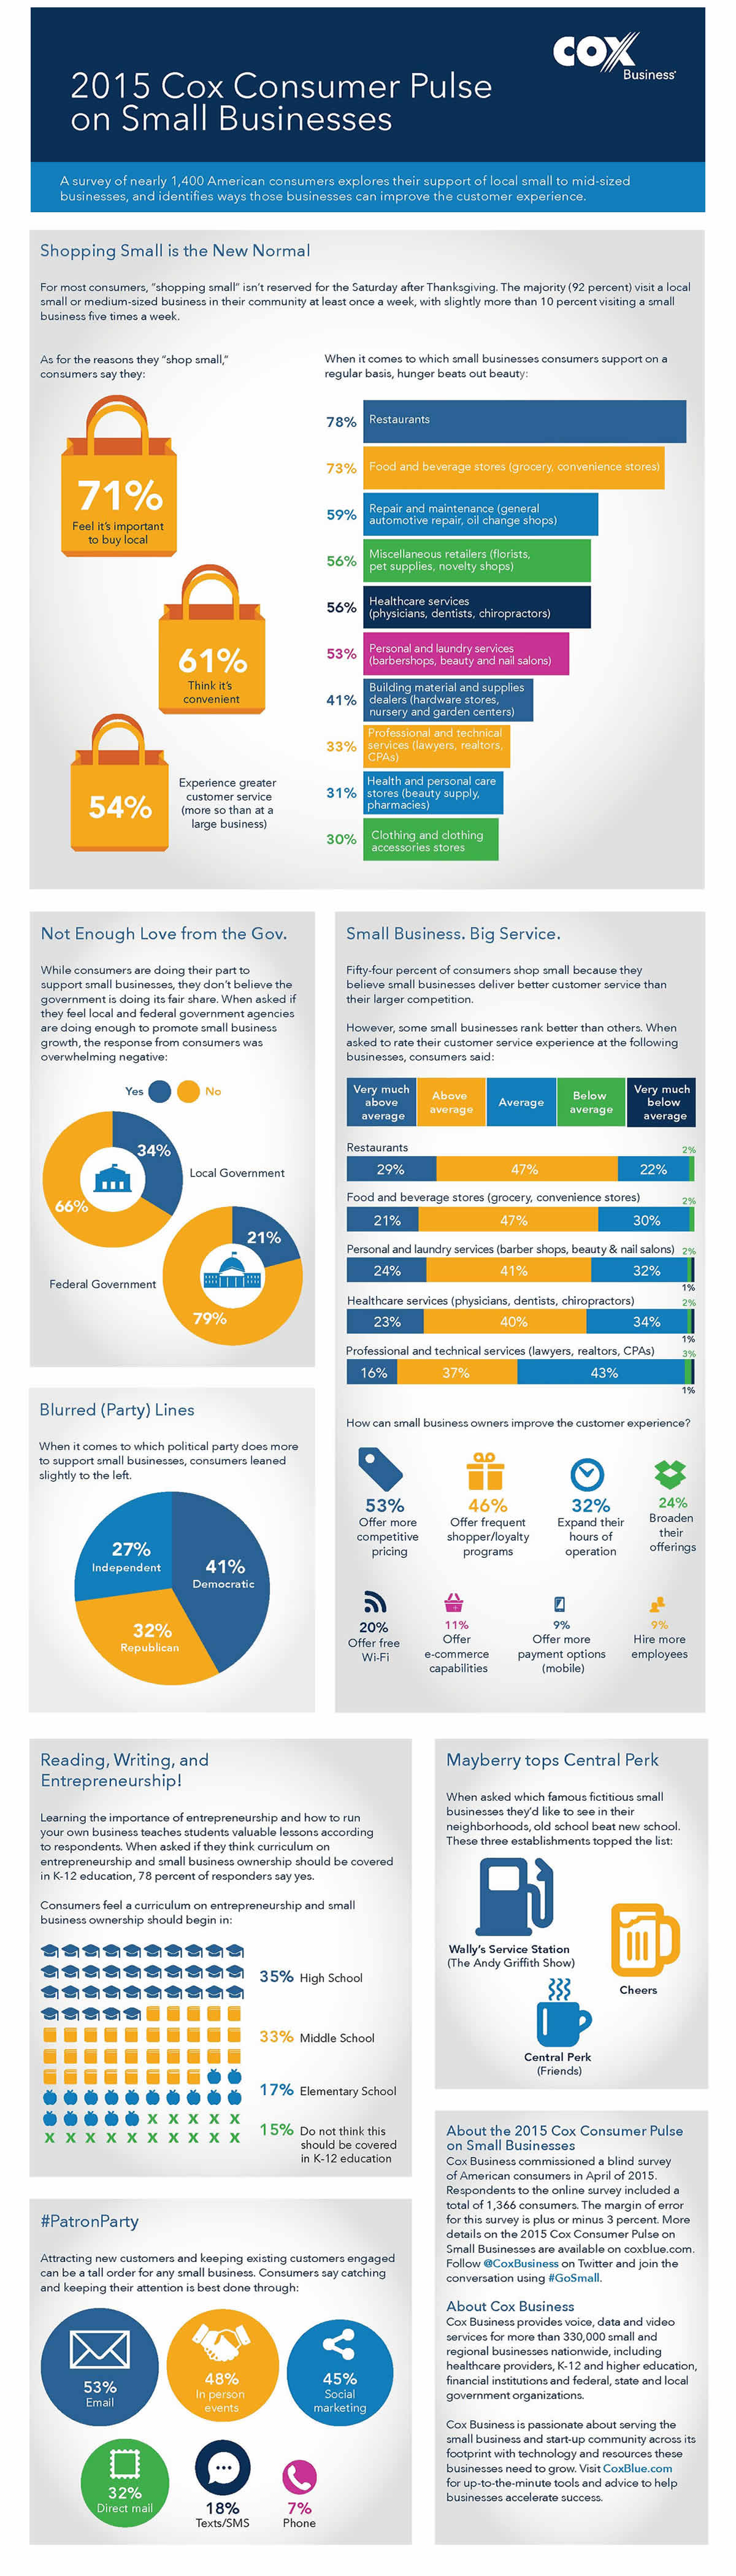 Cox Business Small Business Survey 2015